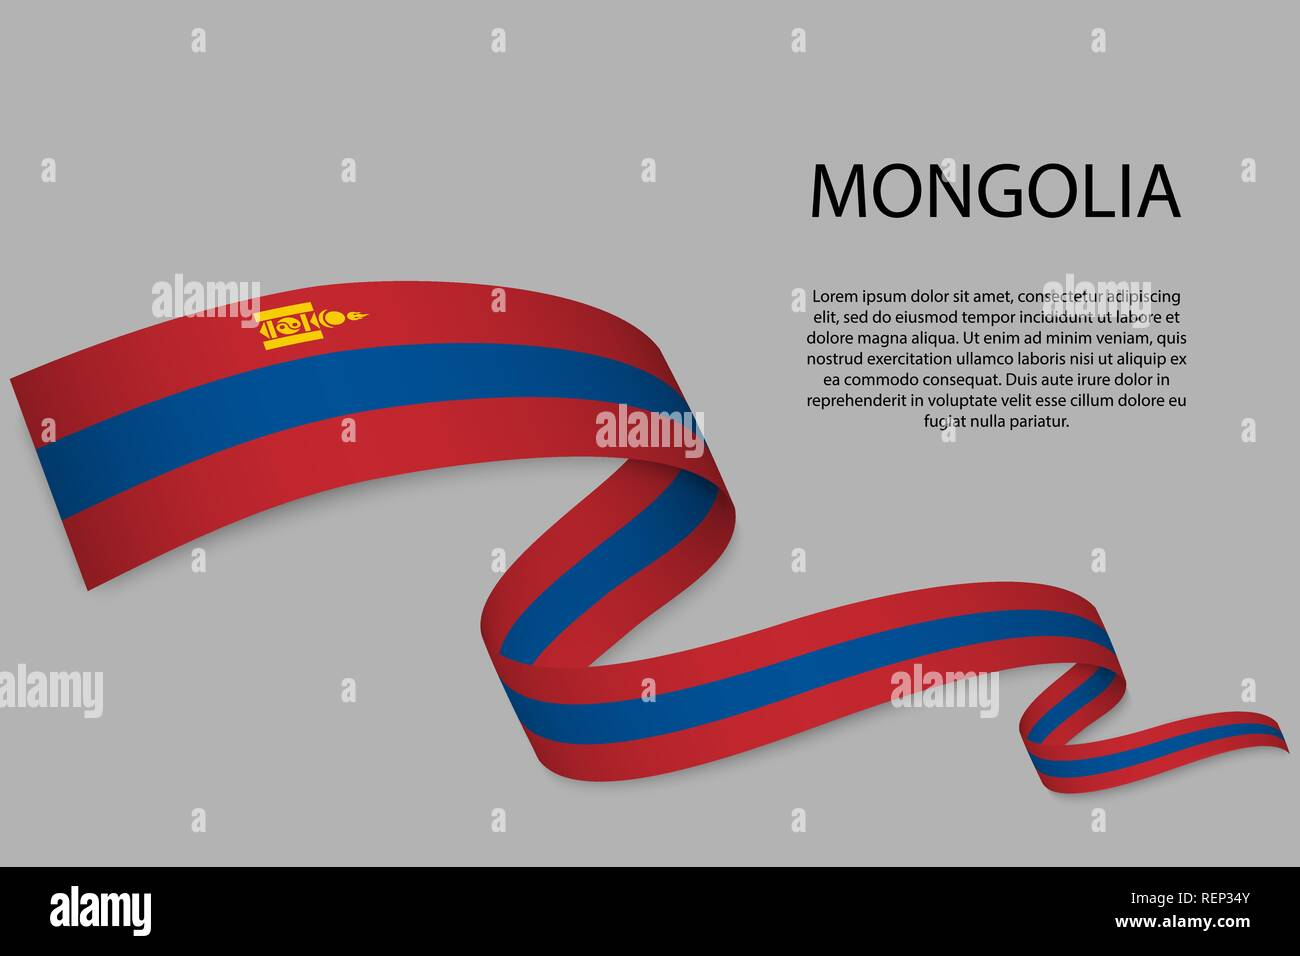 Waving ribbon or banner with flag of Mongolia. Template for independence day poster design - Stock Vector